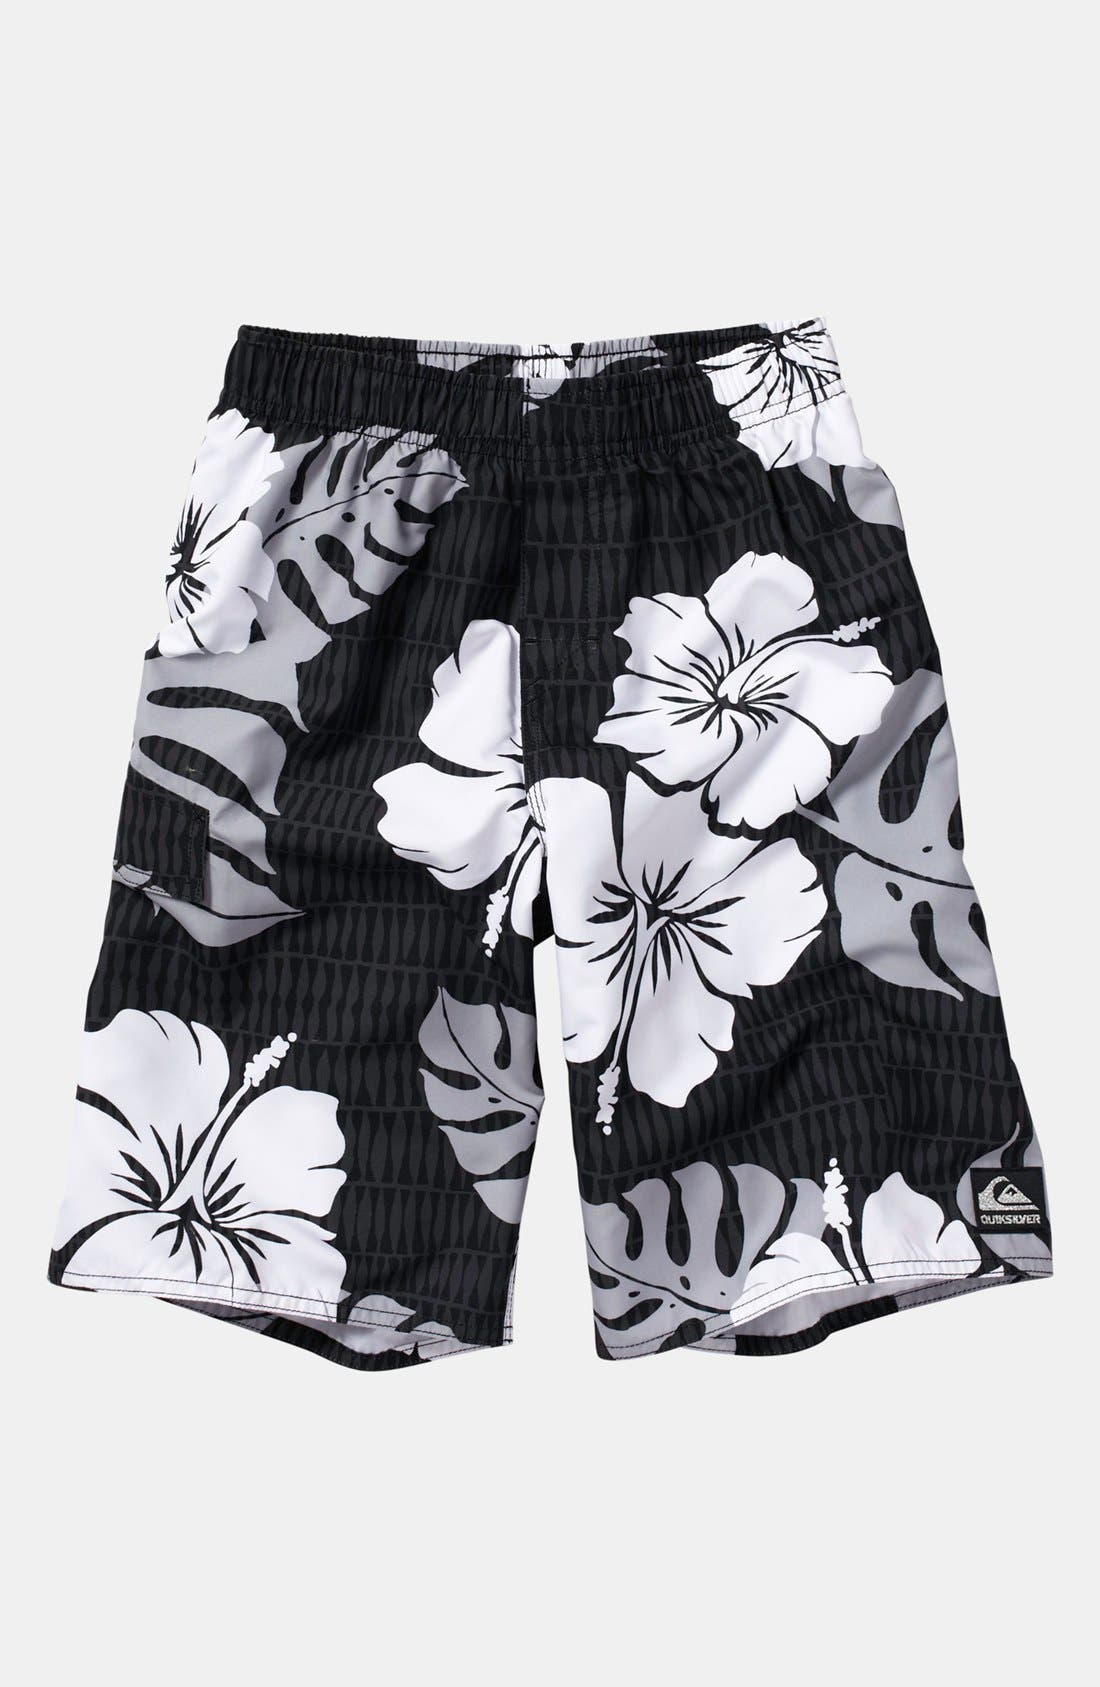 Alternate Image 1 Selected - Quiksilver 'Betta' Volley Shorts (Big Boys)